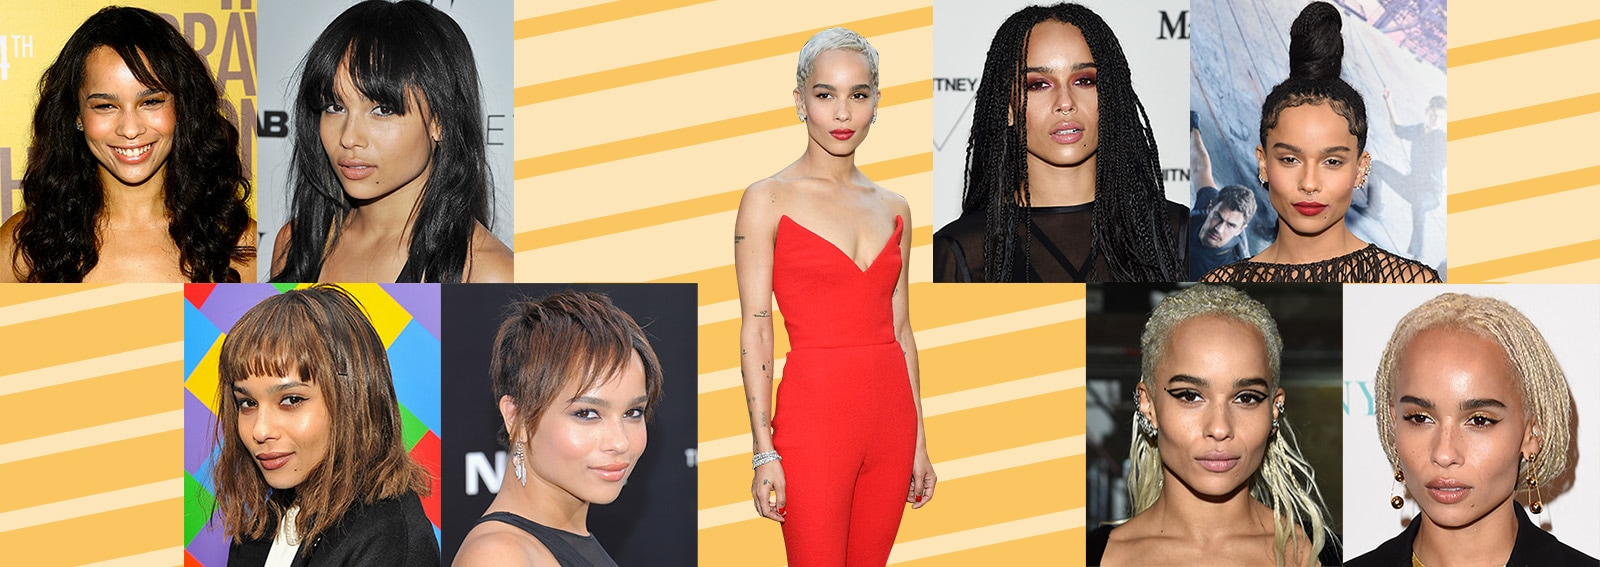 zoe kravitz evoluzione beauty look make up capelli collage_desktop